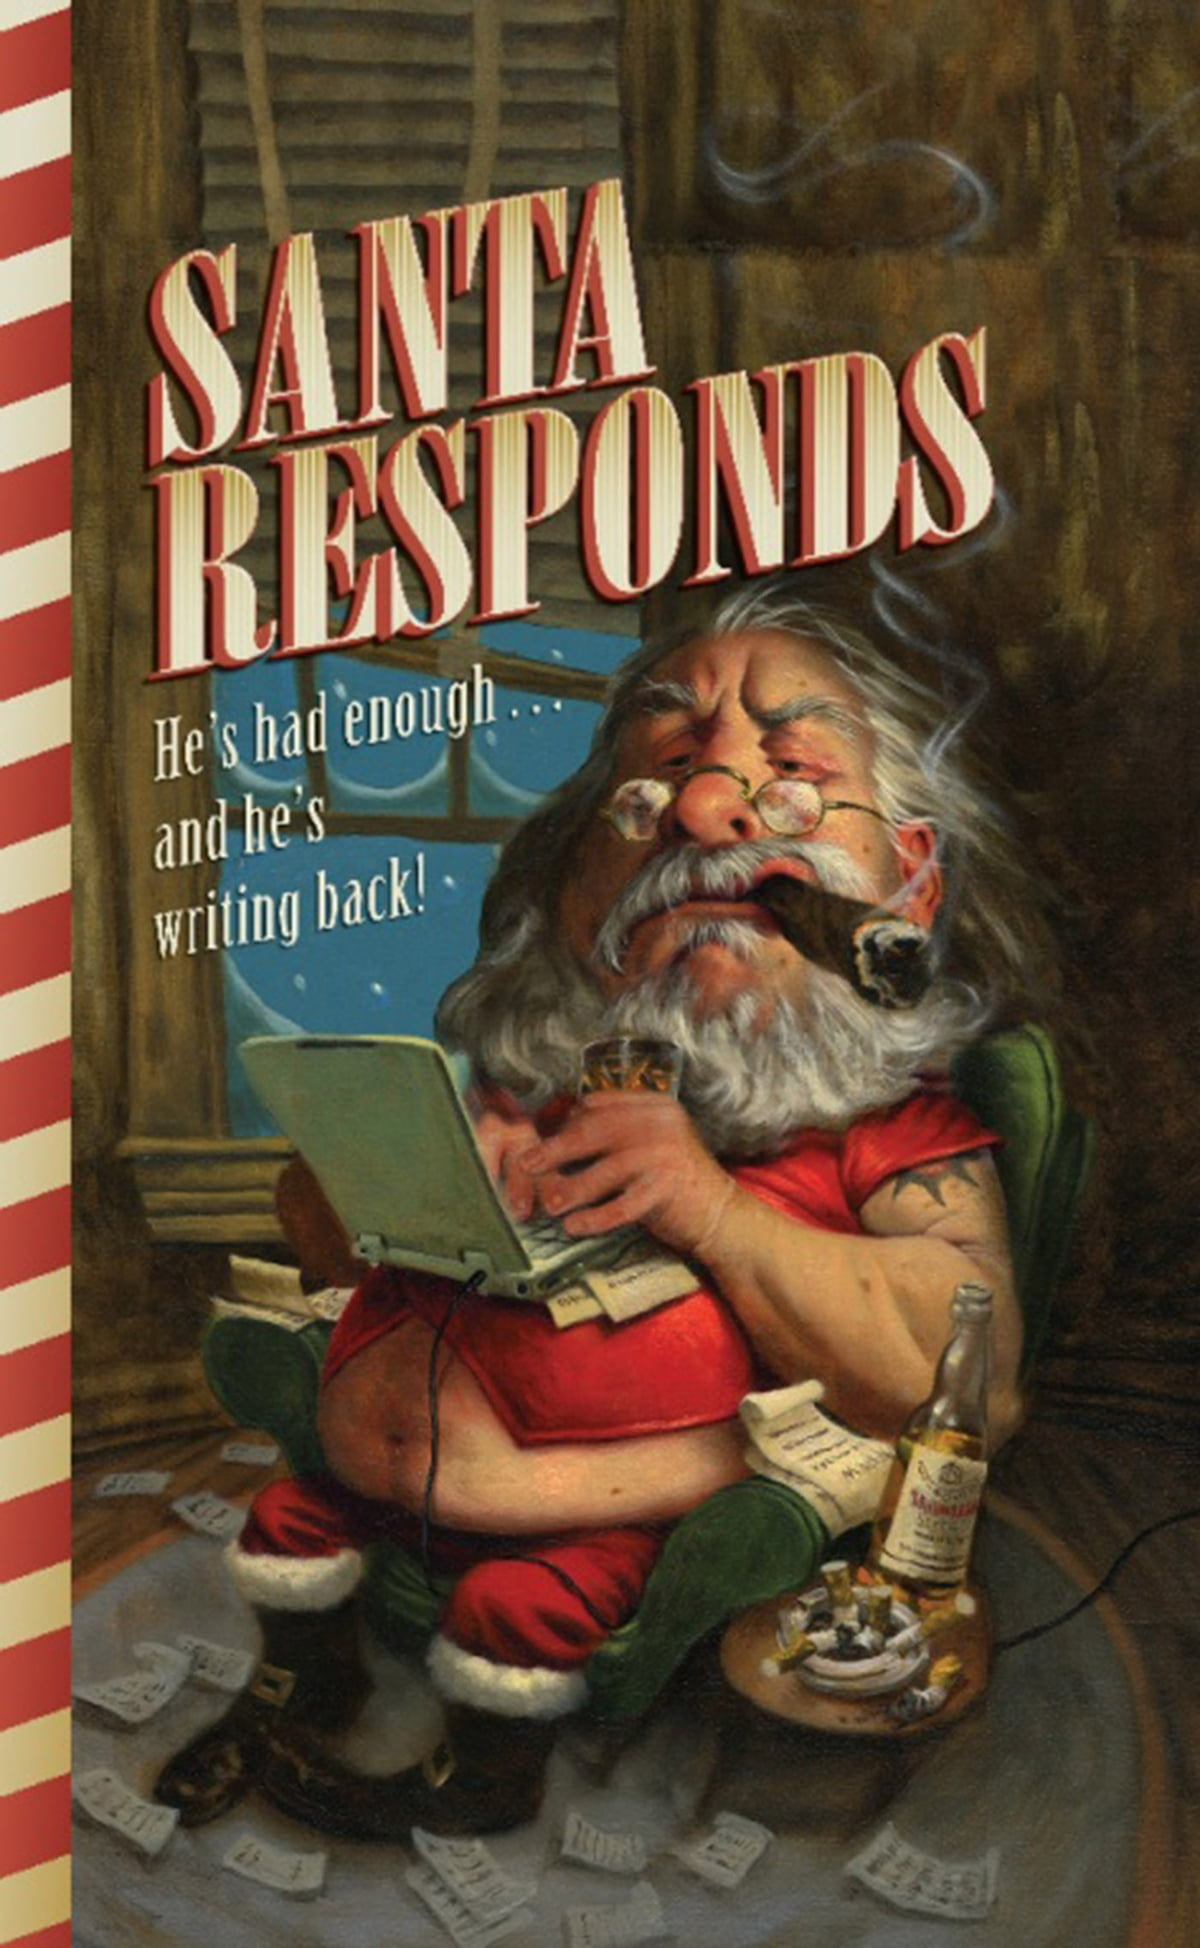 santa responds ebooksanta claus - 9780786741052 | rakuten kobo